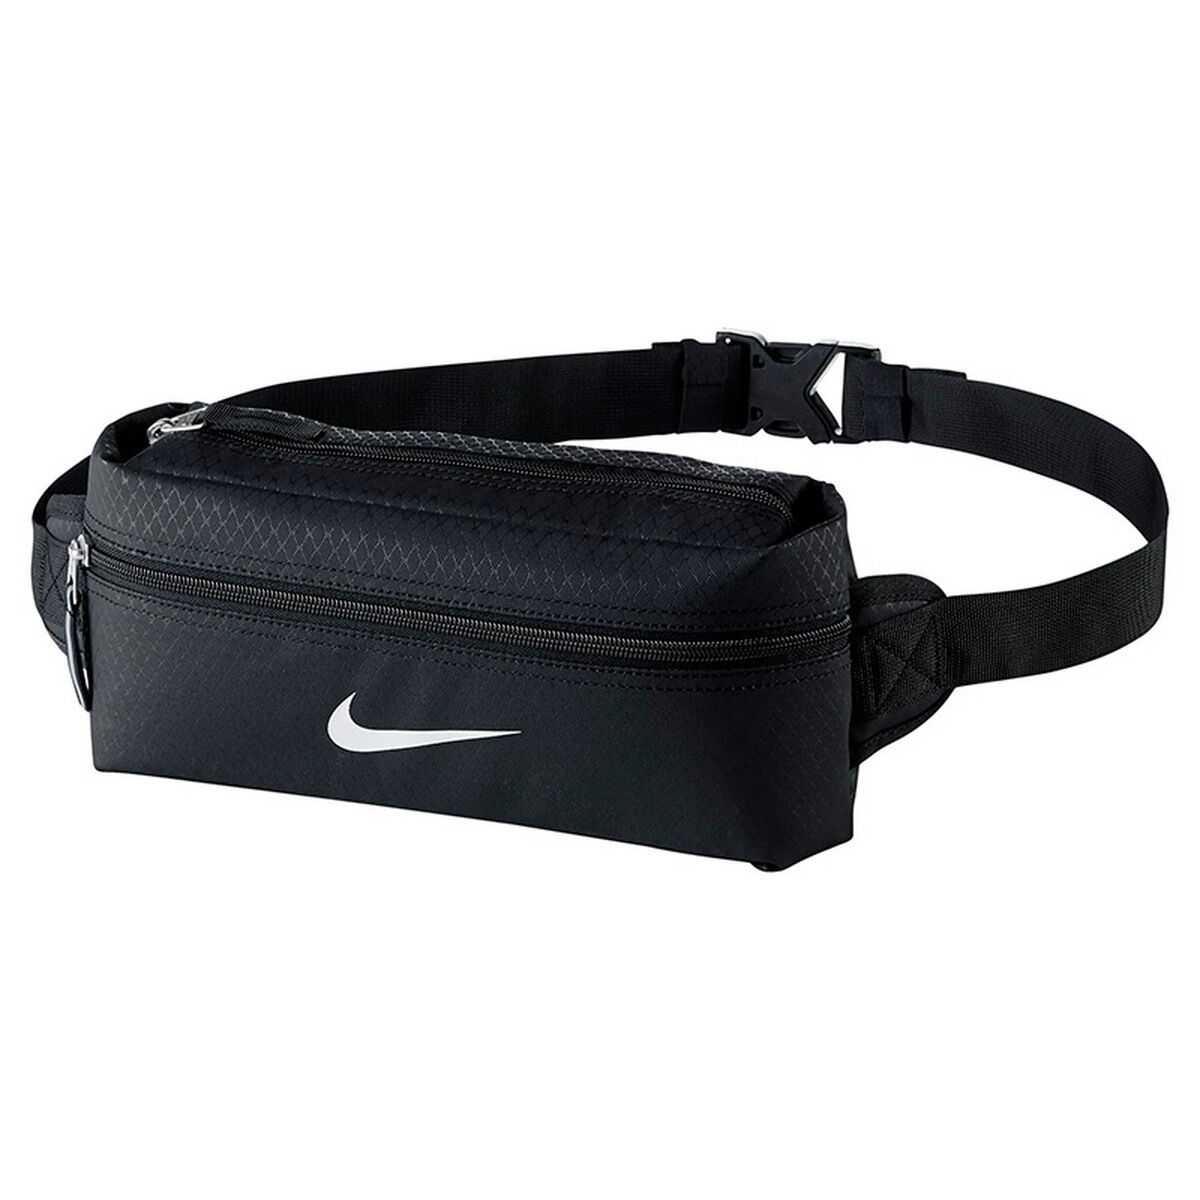 nike sling pack cheap   OFF72% The Largest Catalog Discounts 40ec327afb